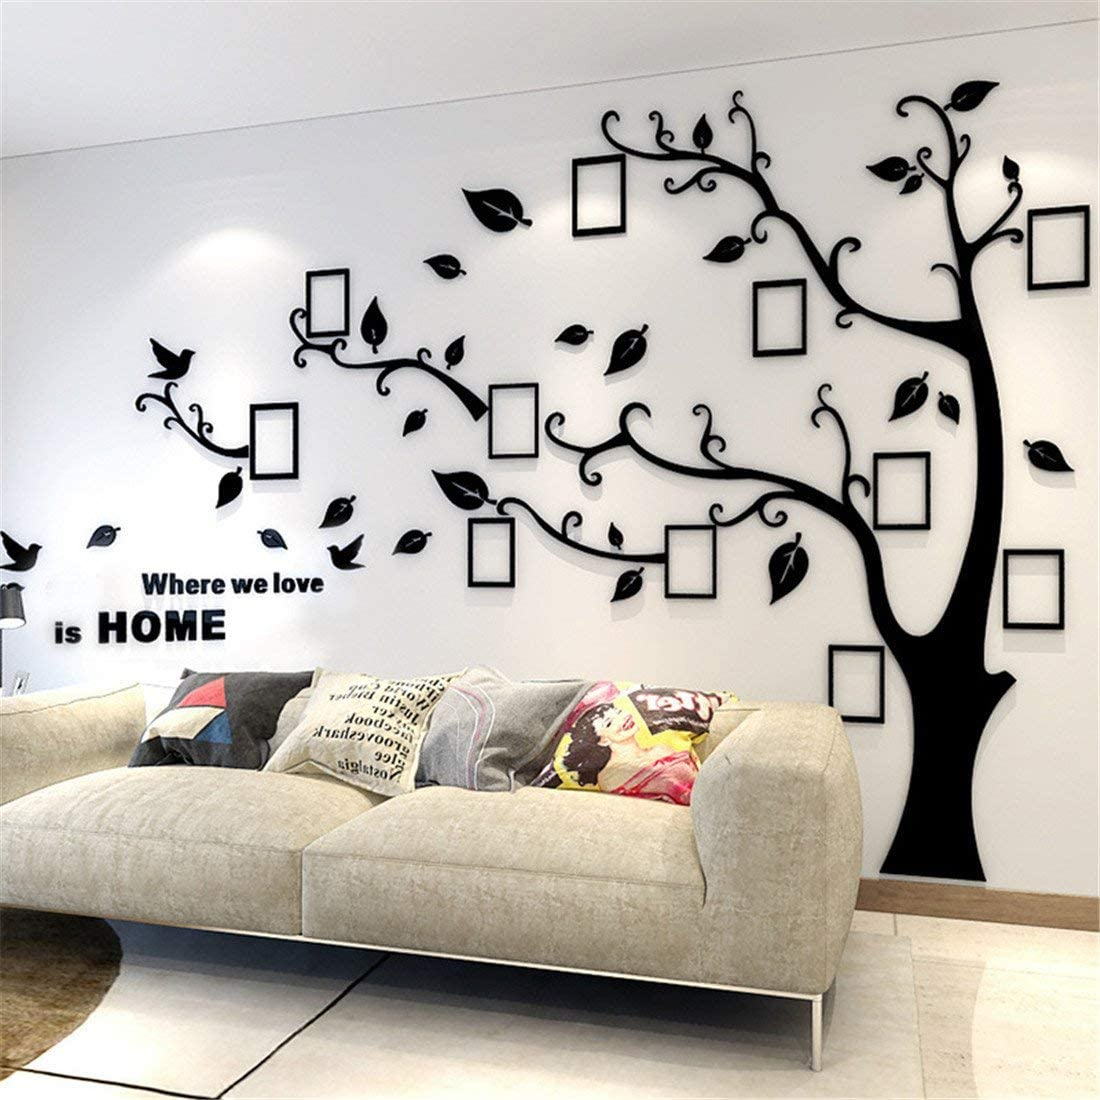 Unitendo 3D Acrylic Wall Stickers Photo Frames FamilyTree Wall Decal Easy to Install &Apply DIY Photo Gallery Frame Decor Sticker Home Art Decor (Black Leaves-Right, L)…